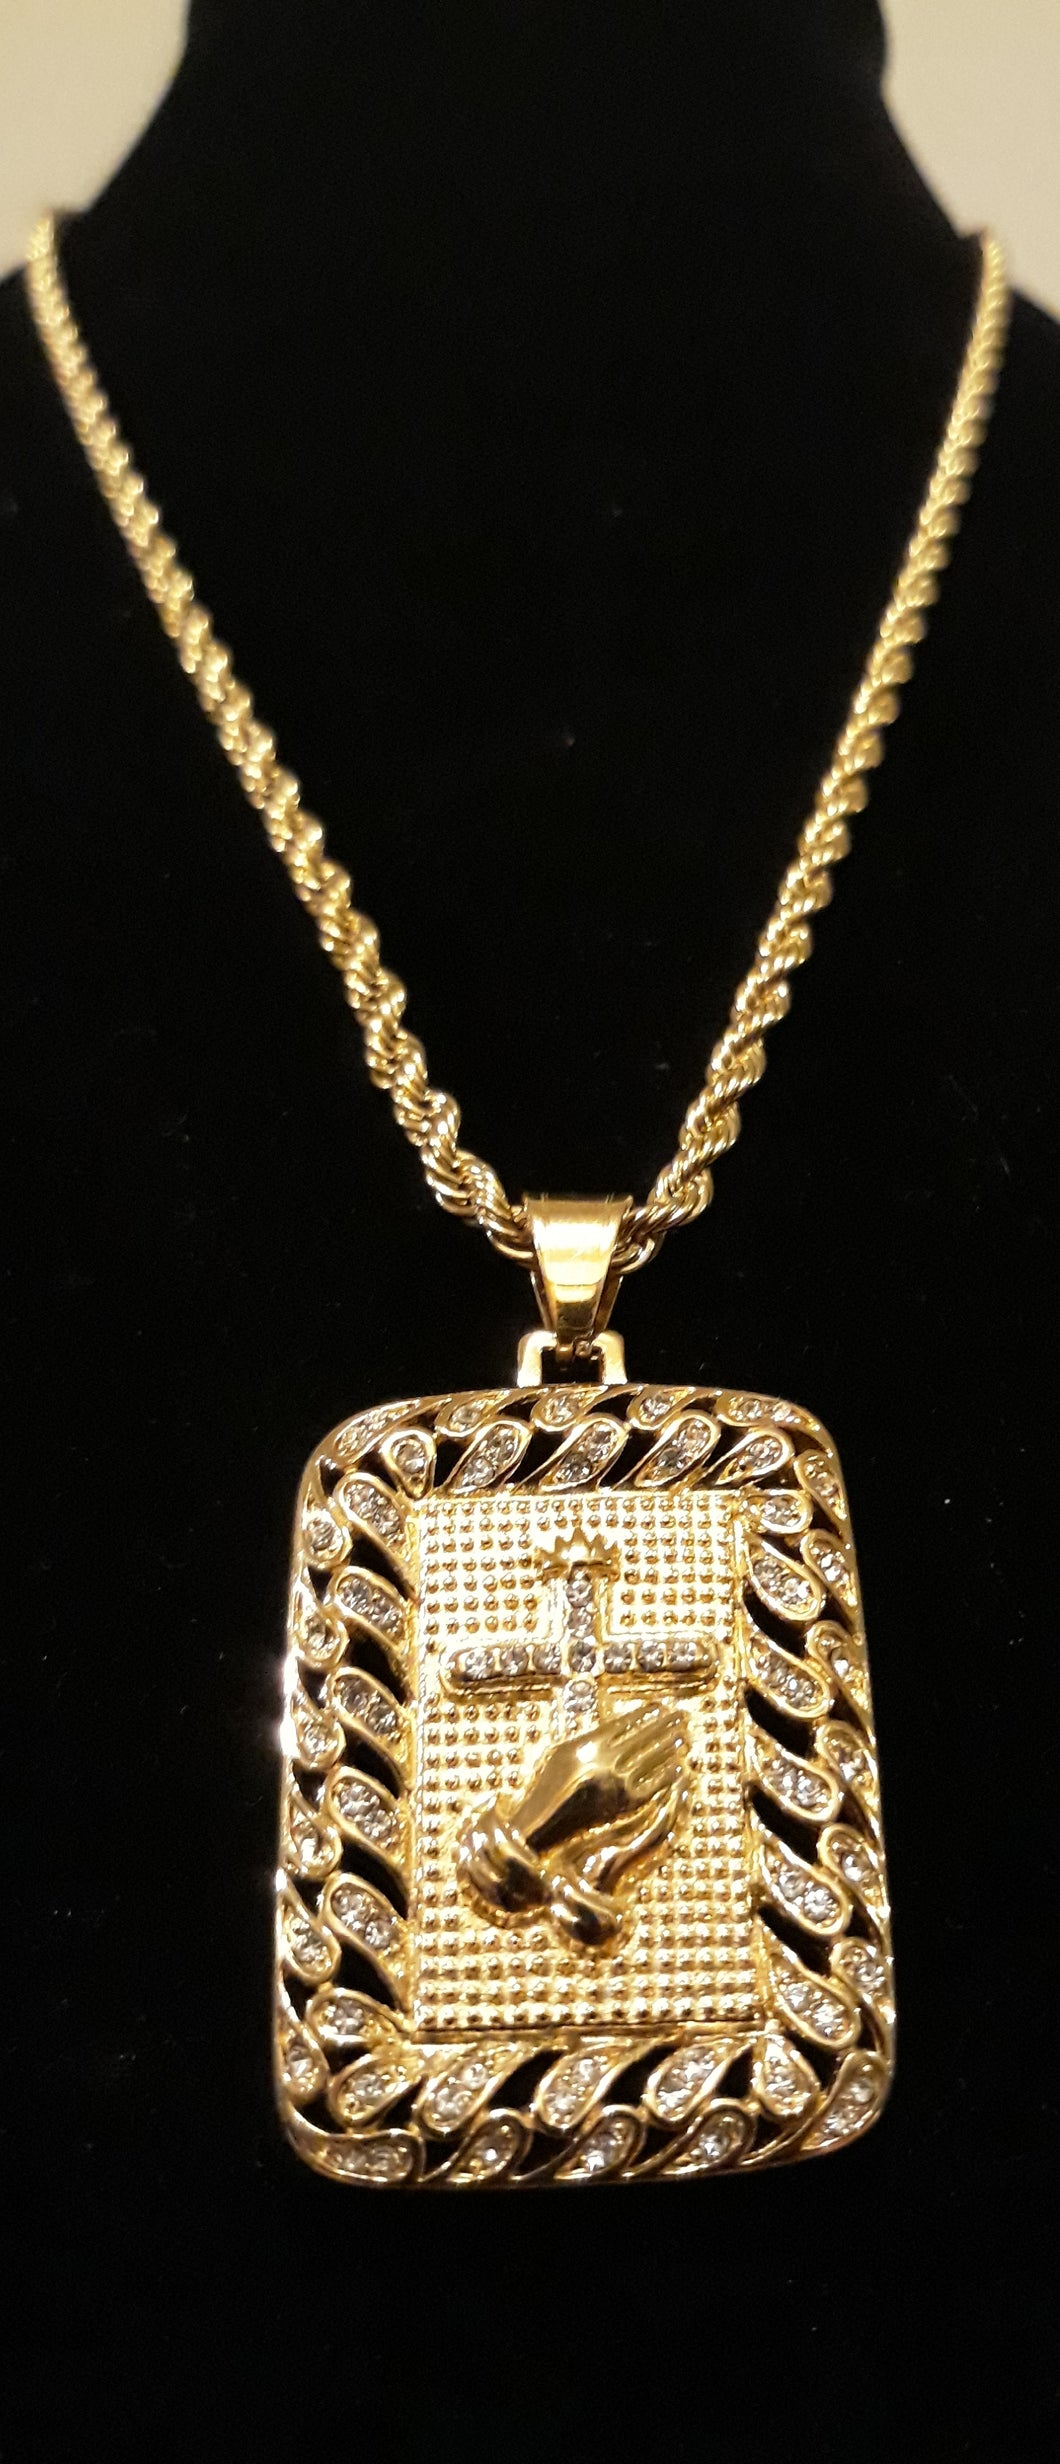 4mm 24inch Gold Plated Rope Chain and Pendant